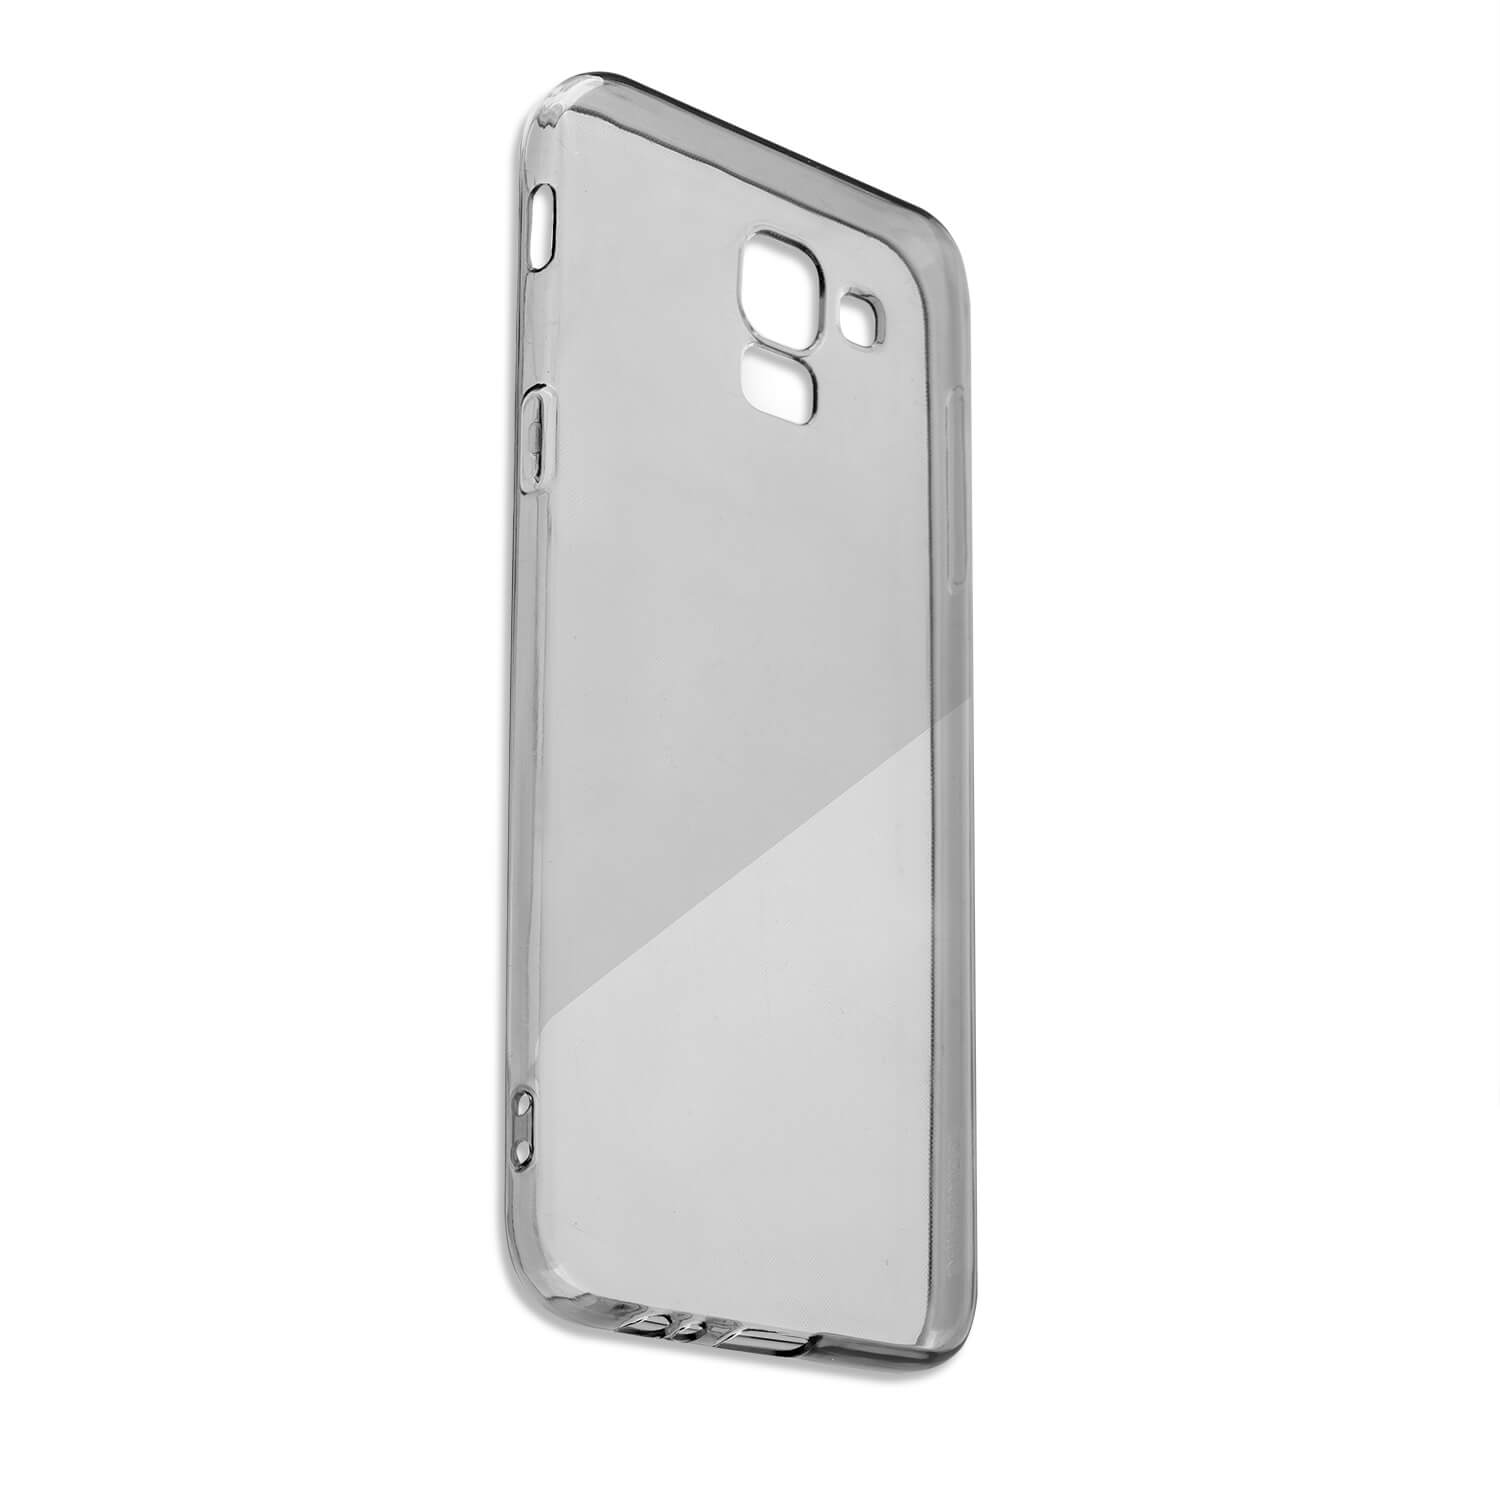 4smarts Soft Cover Invisible Slim - тънък силиконов кейс за Samsung Galaxy J6 Plus (черен)